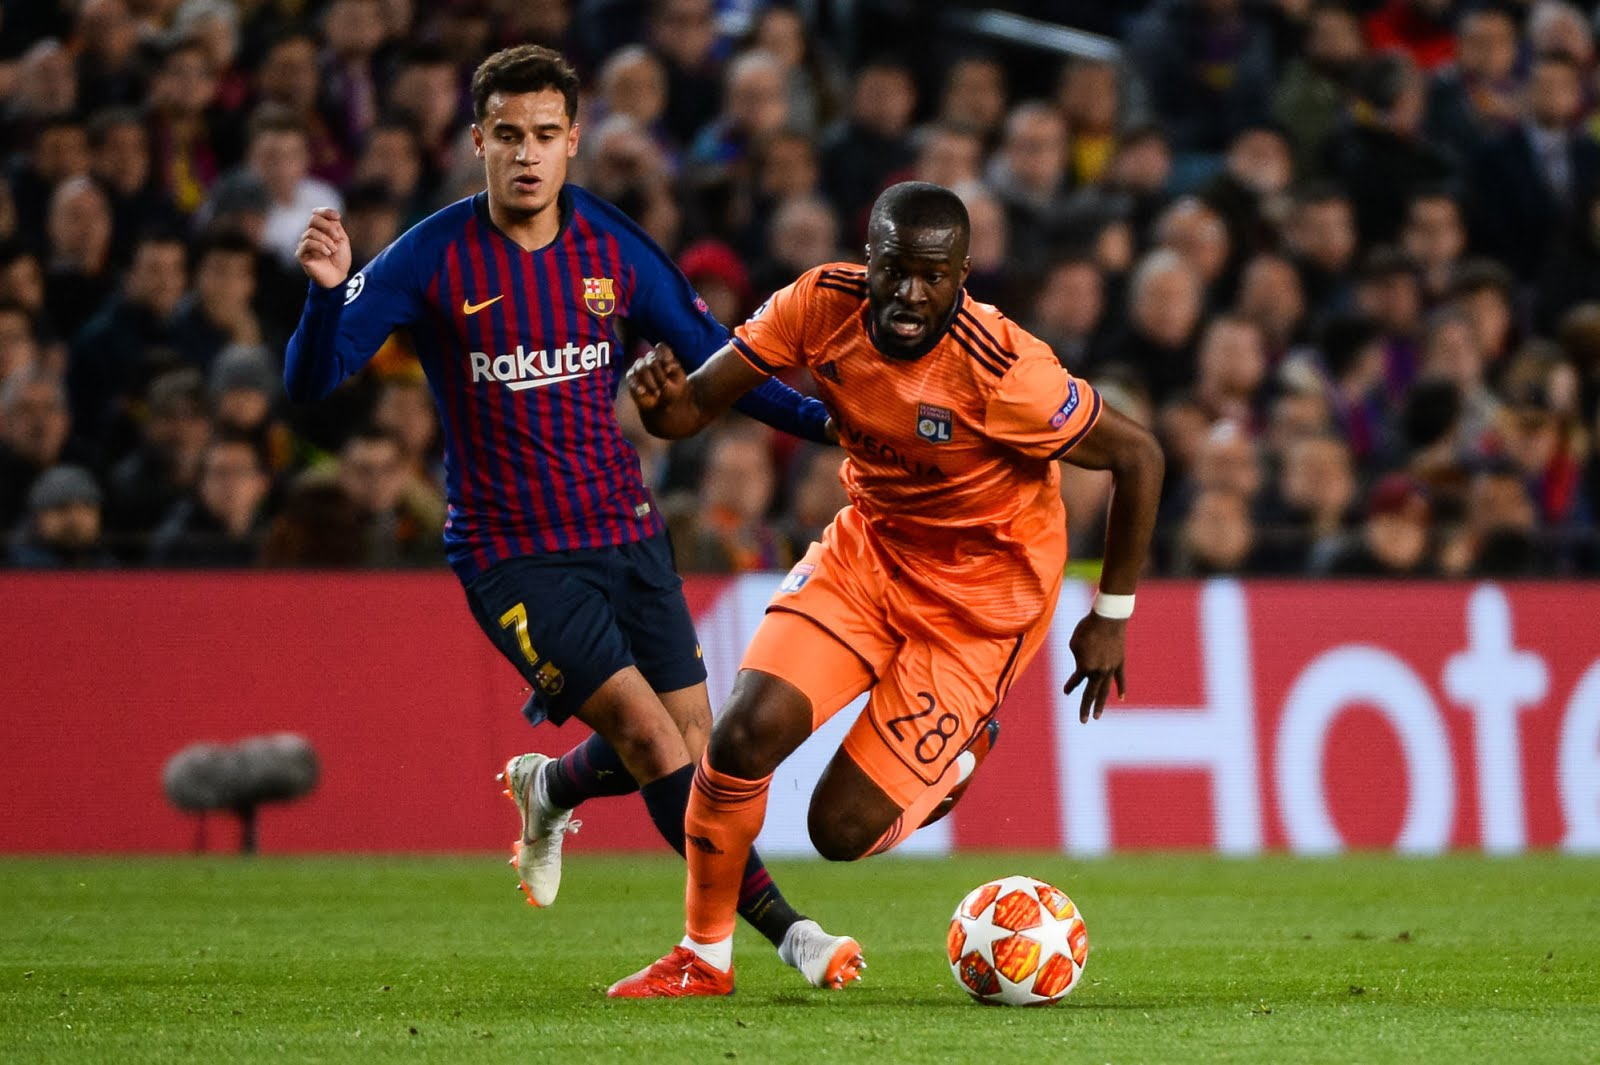 Philippe Coutinho of Barcelona and Tanguy Ndombele of Lyon during the UEFA Champions League Round of 16 Second Leg match between Barcelona and Lyon at Camp Nou on March 13, 2019 in Barcelona, Spain